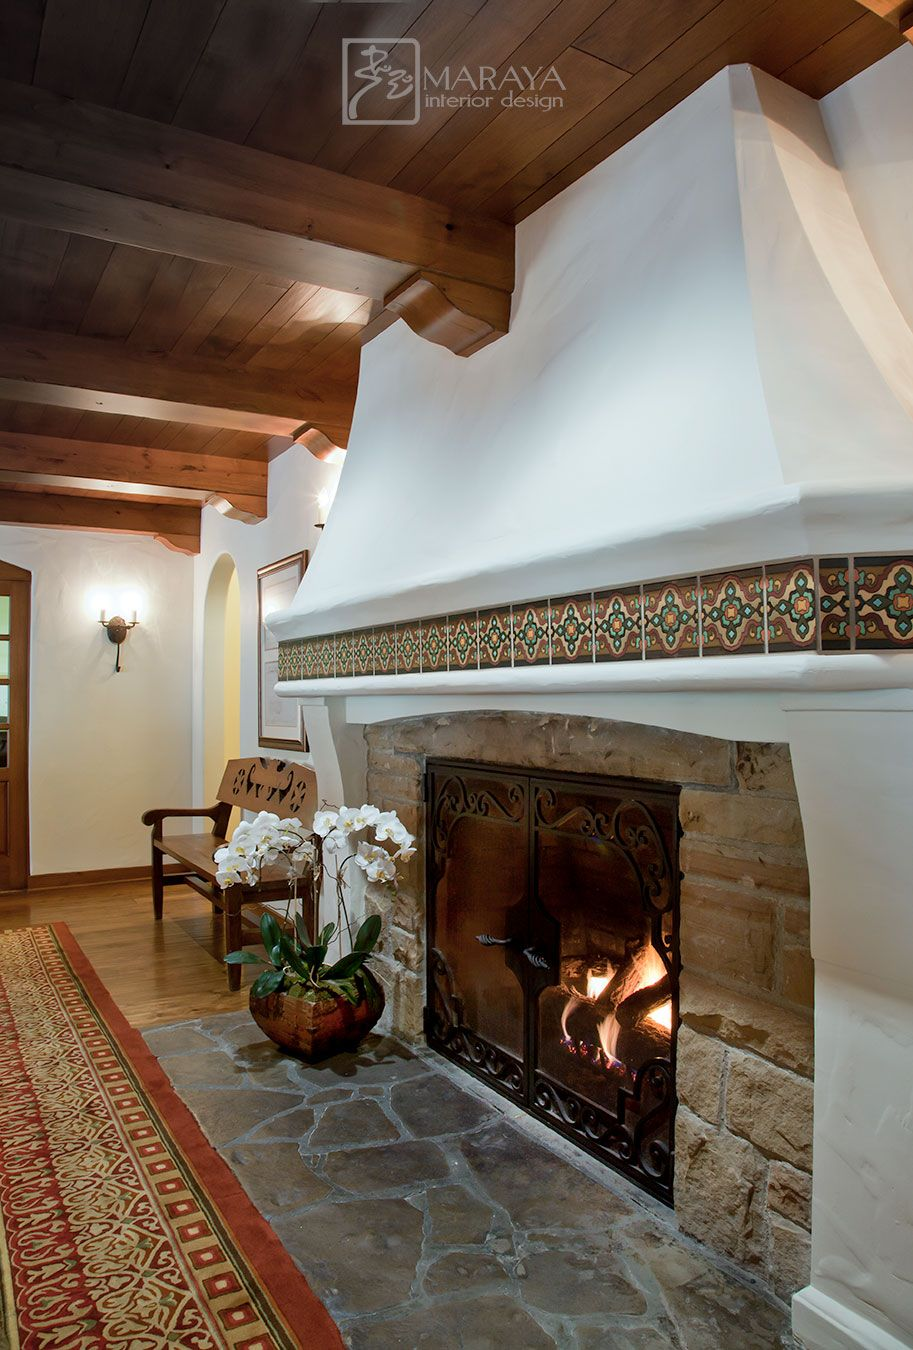 Spanish Colonial Fireplace In Plaster And Stone With Malibu Tile